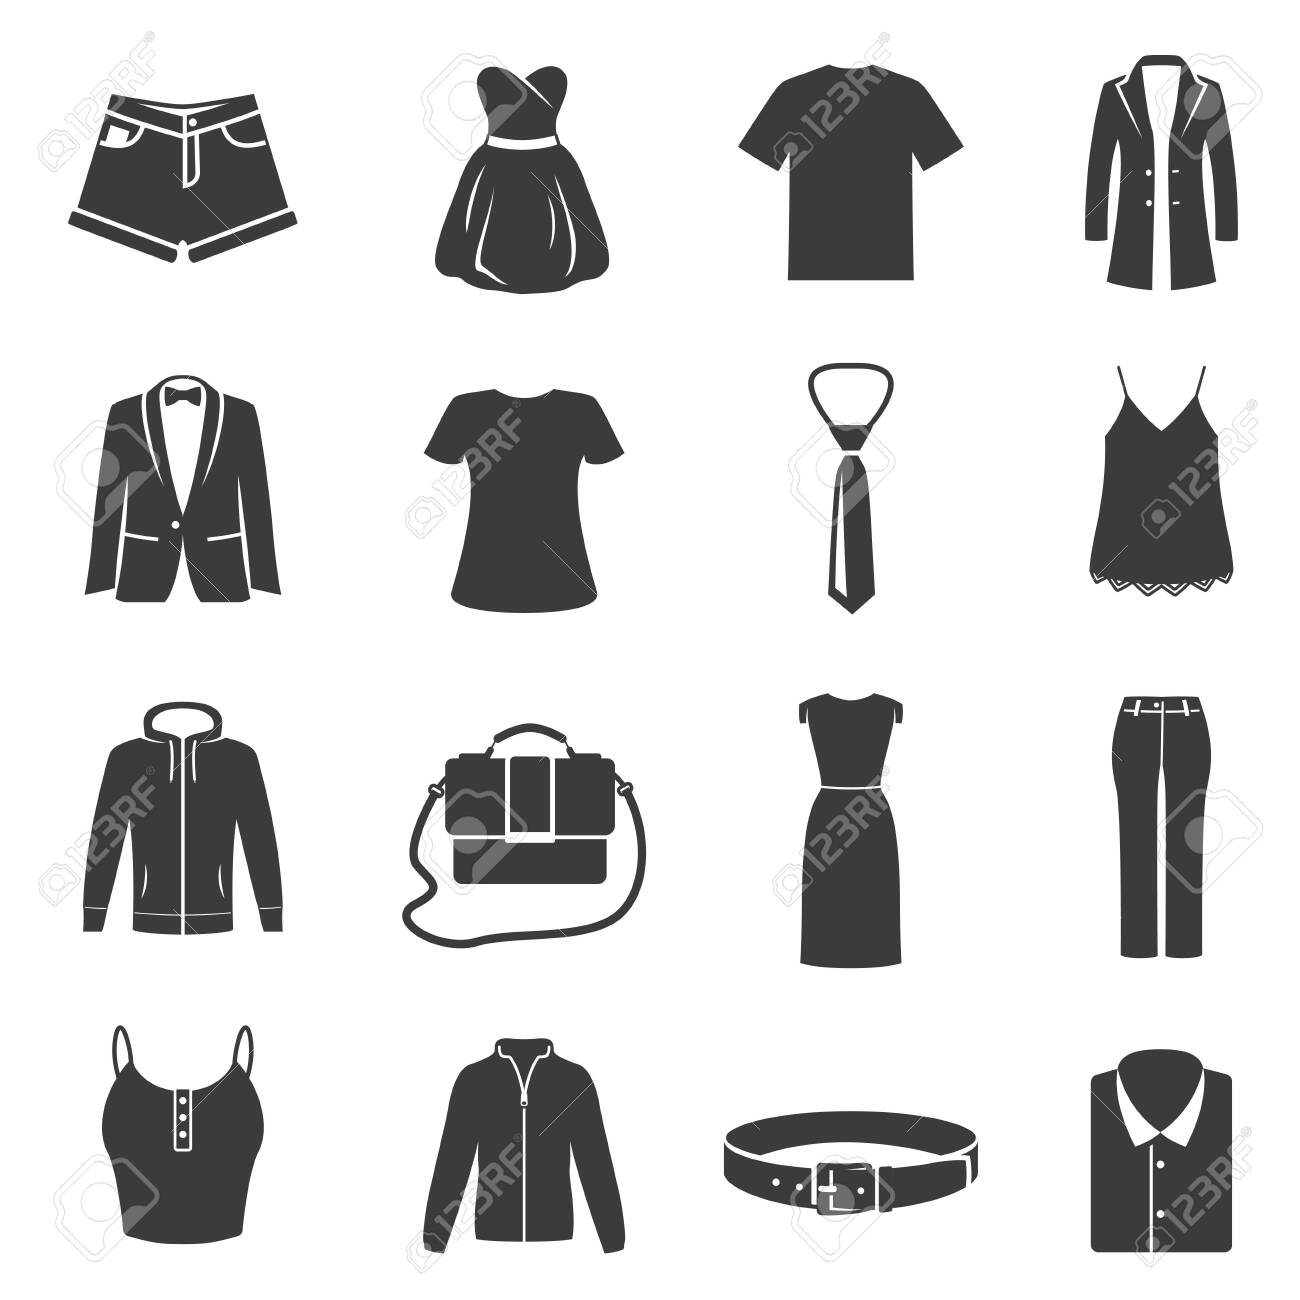 Set of female, male dress, clothes black silhouette icons isolated on white. Accessories pictograms. - 146941028